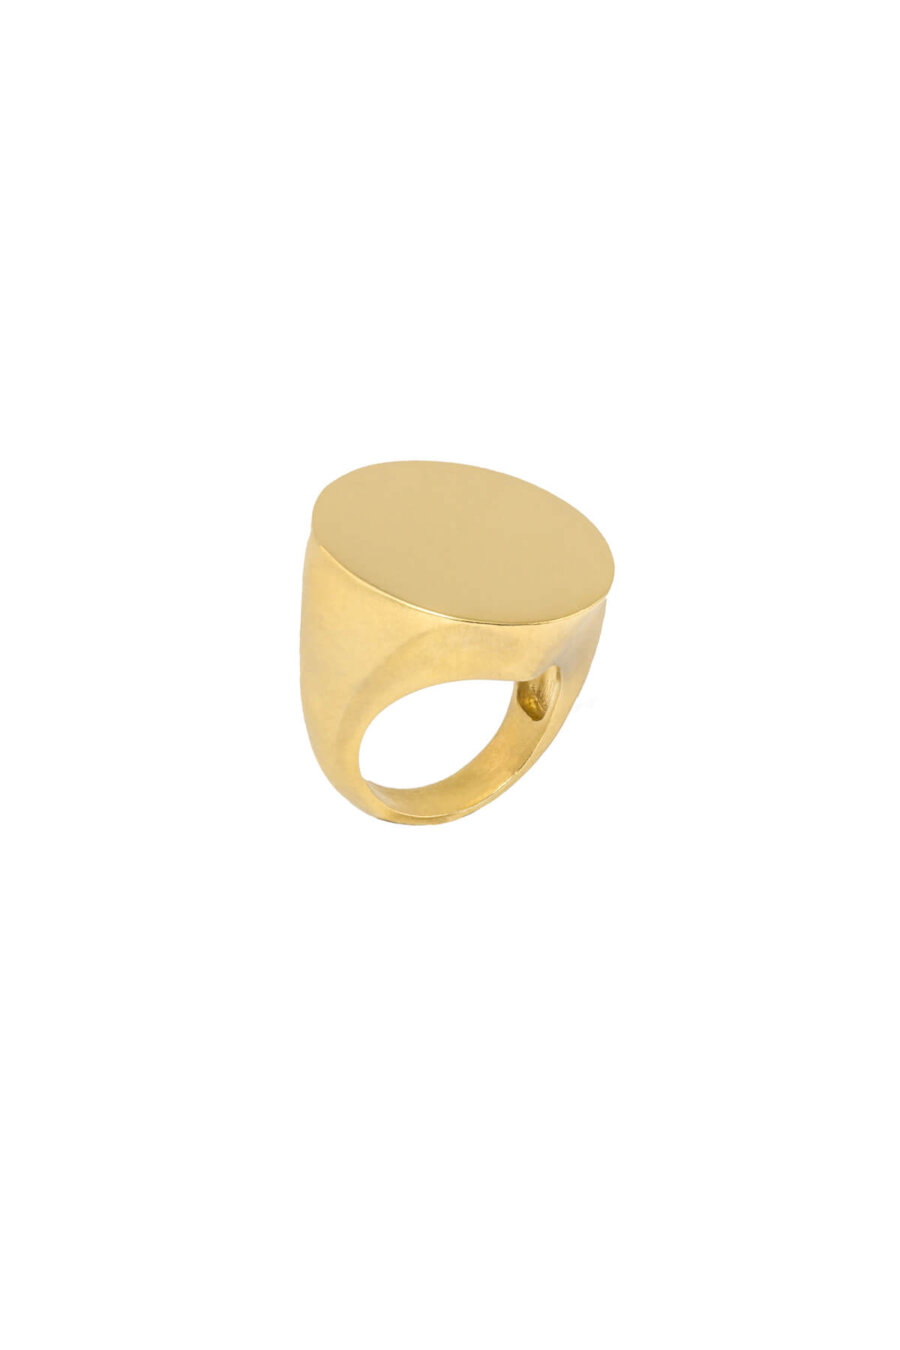 the-maxi-signet-ring-by-glenda-lopez-lateral